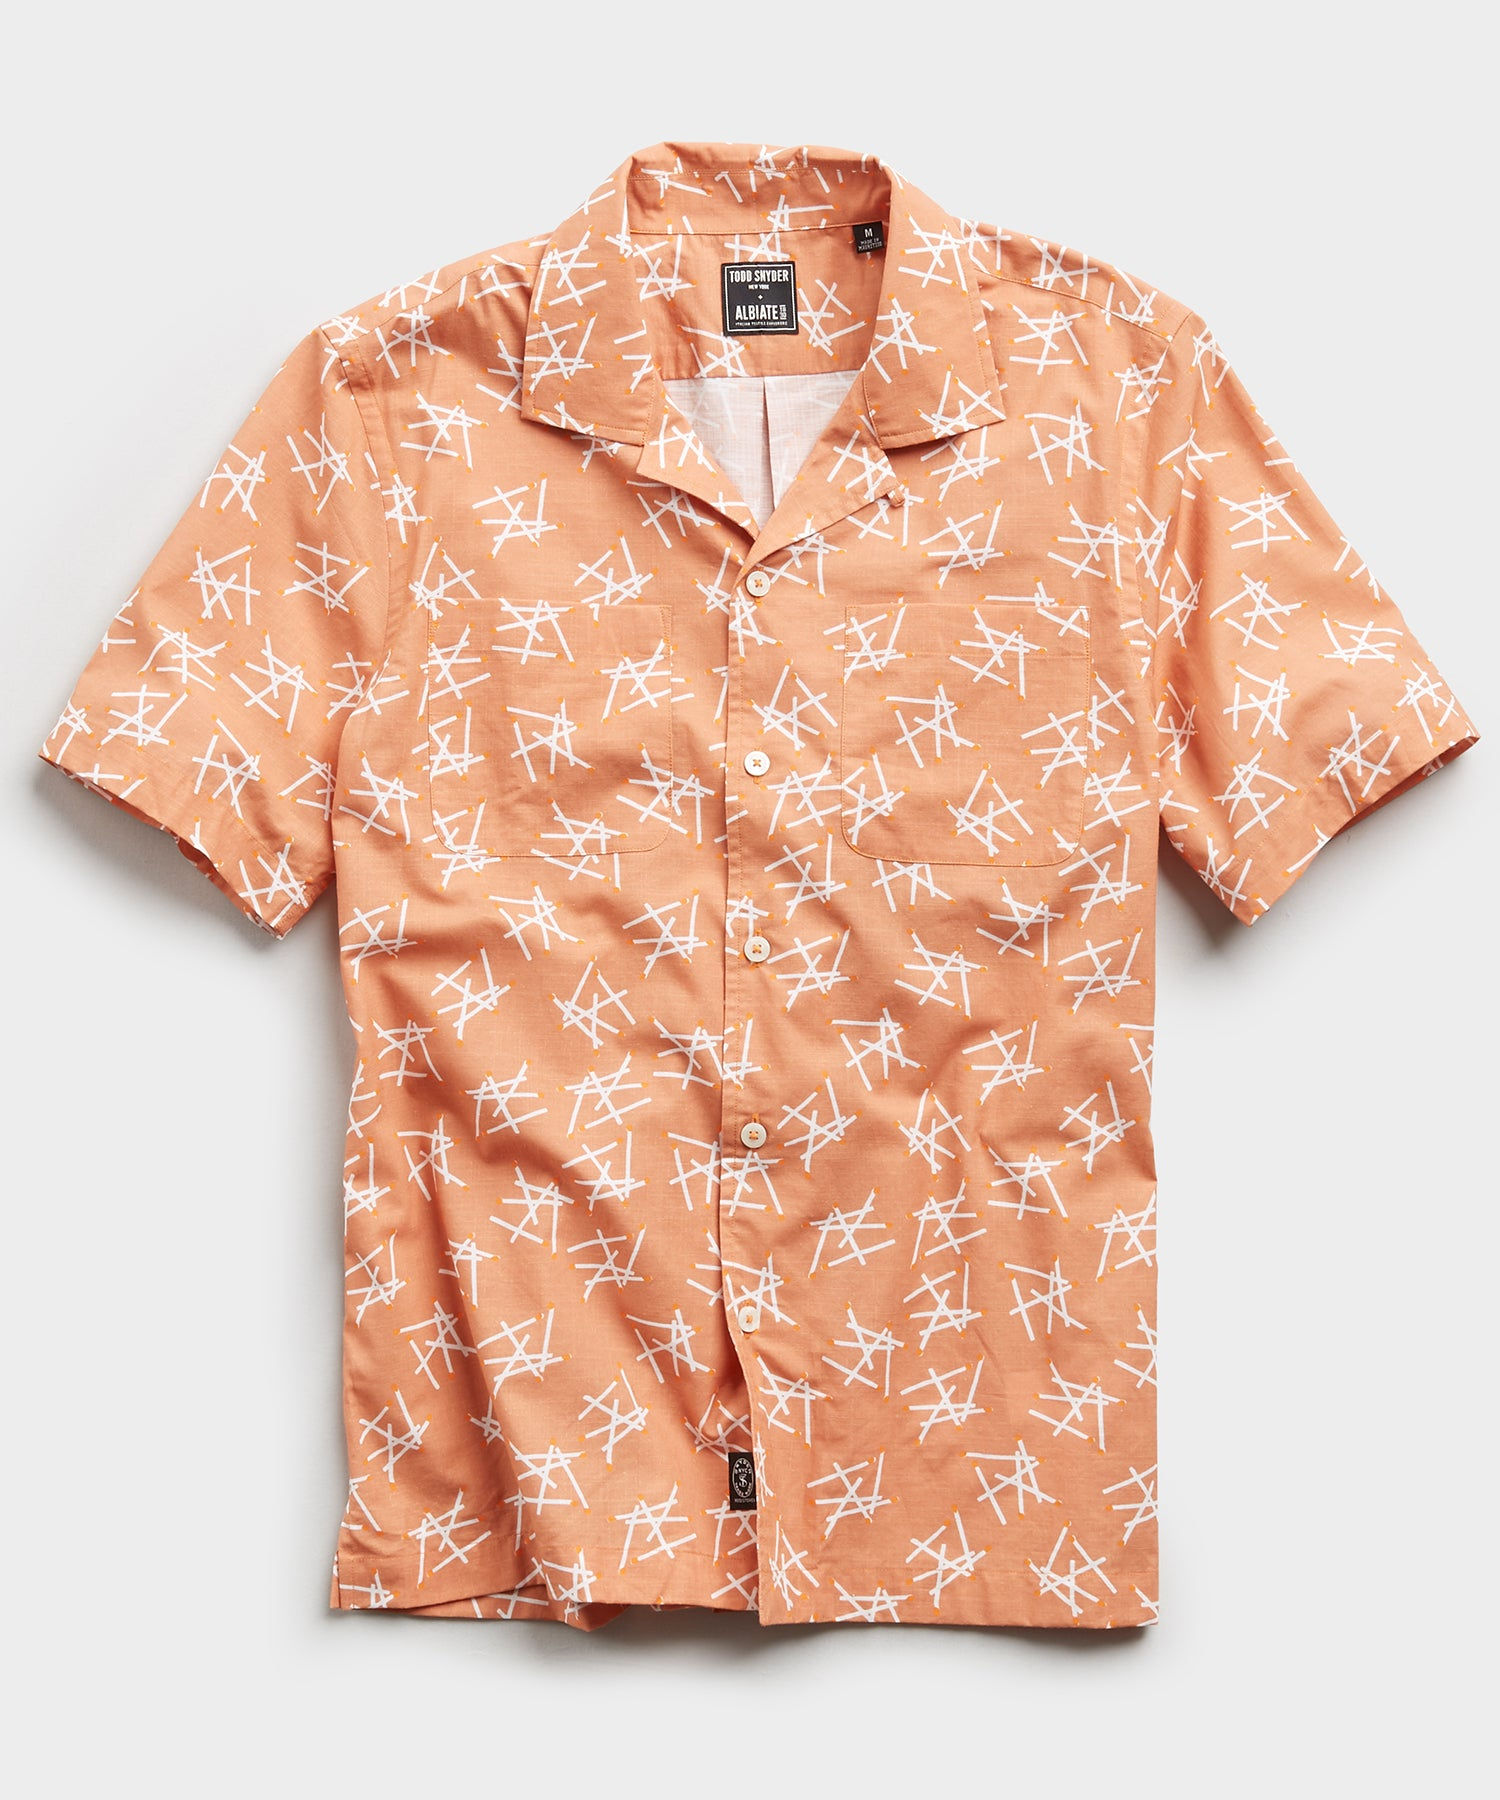 Limited Edition Matchstick Print Camp Collar Short Sleeve Shirt in Peach